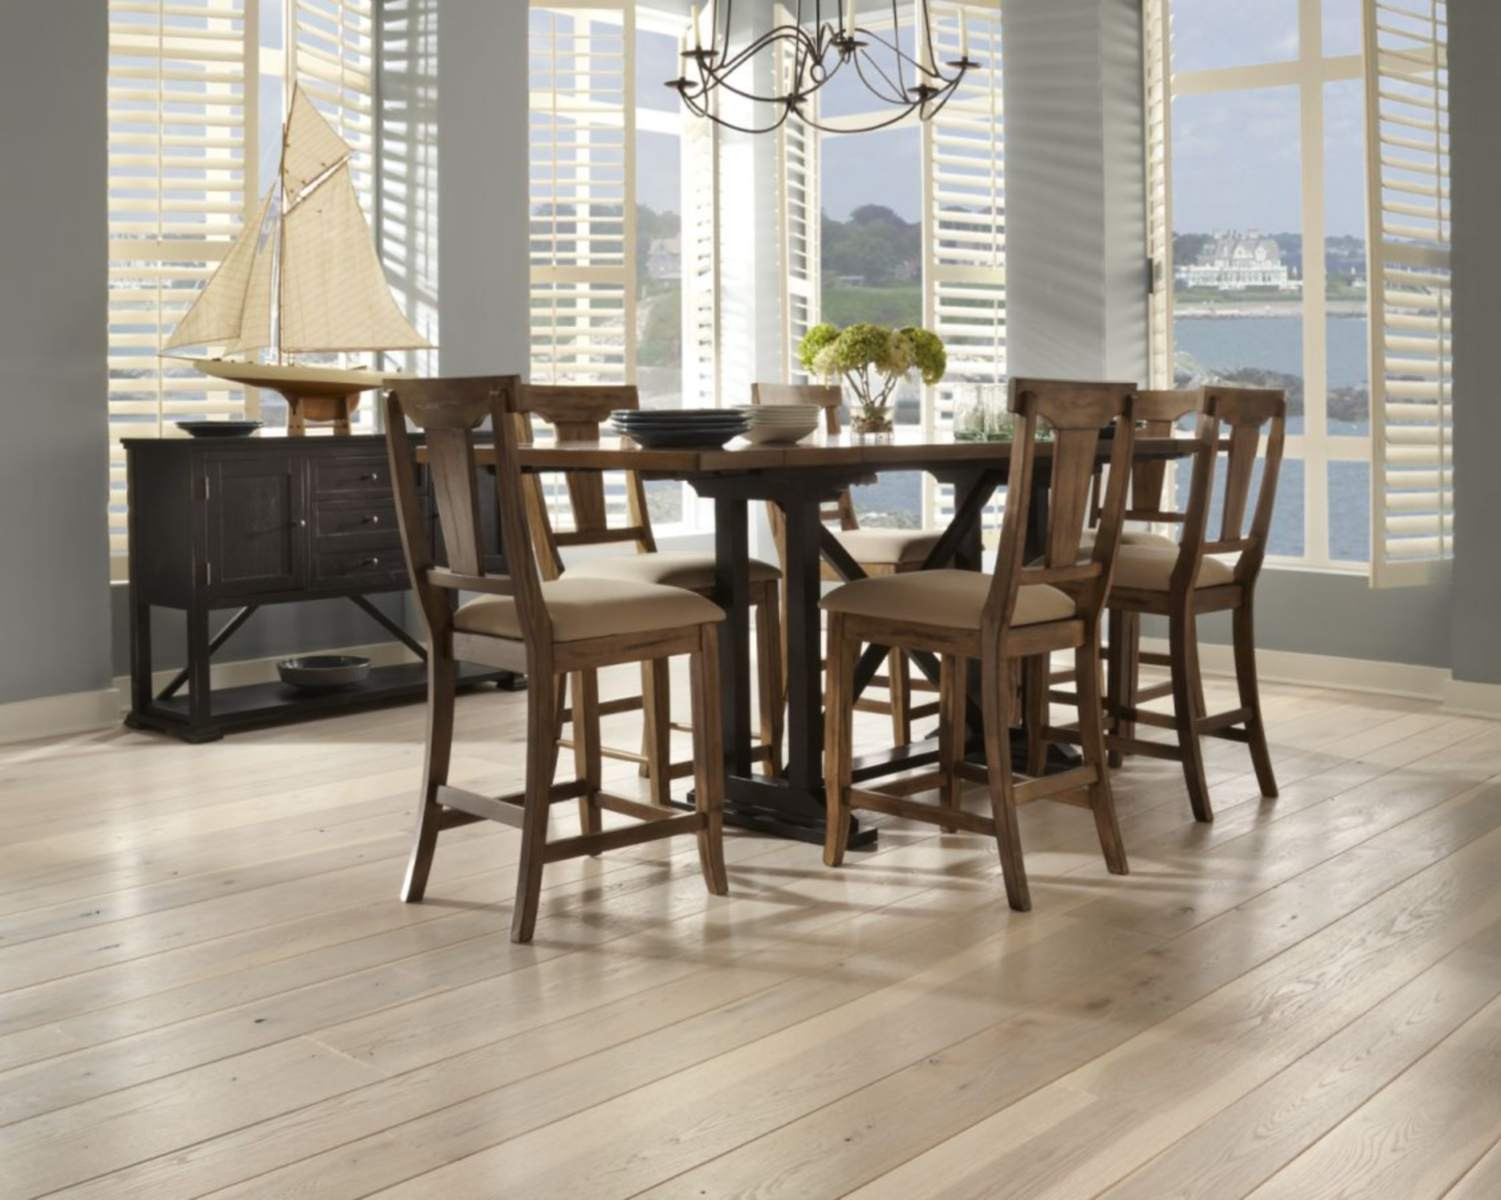 cost of hardwood flooring per square foot canada of top 5 brands for solid hardwood flooring pertaining to a dining room with carlisle hickorys wide plank flooring